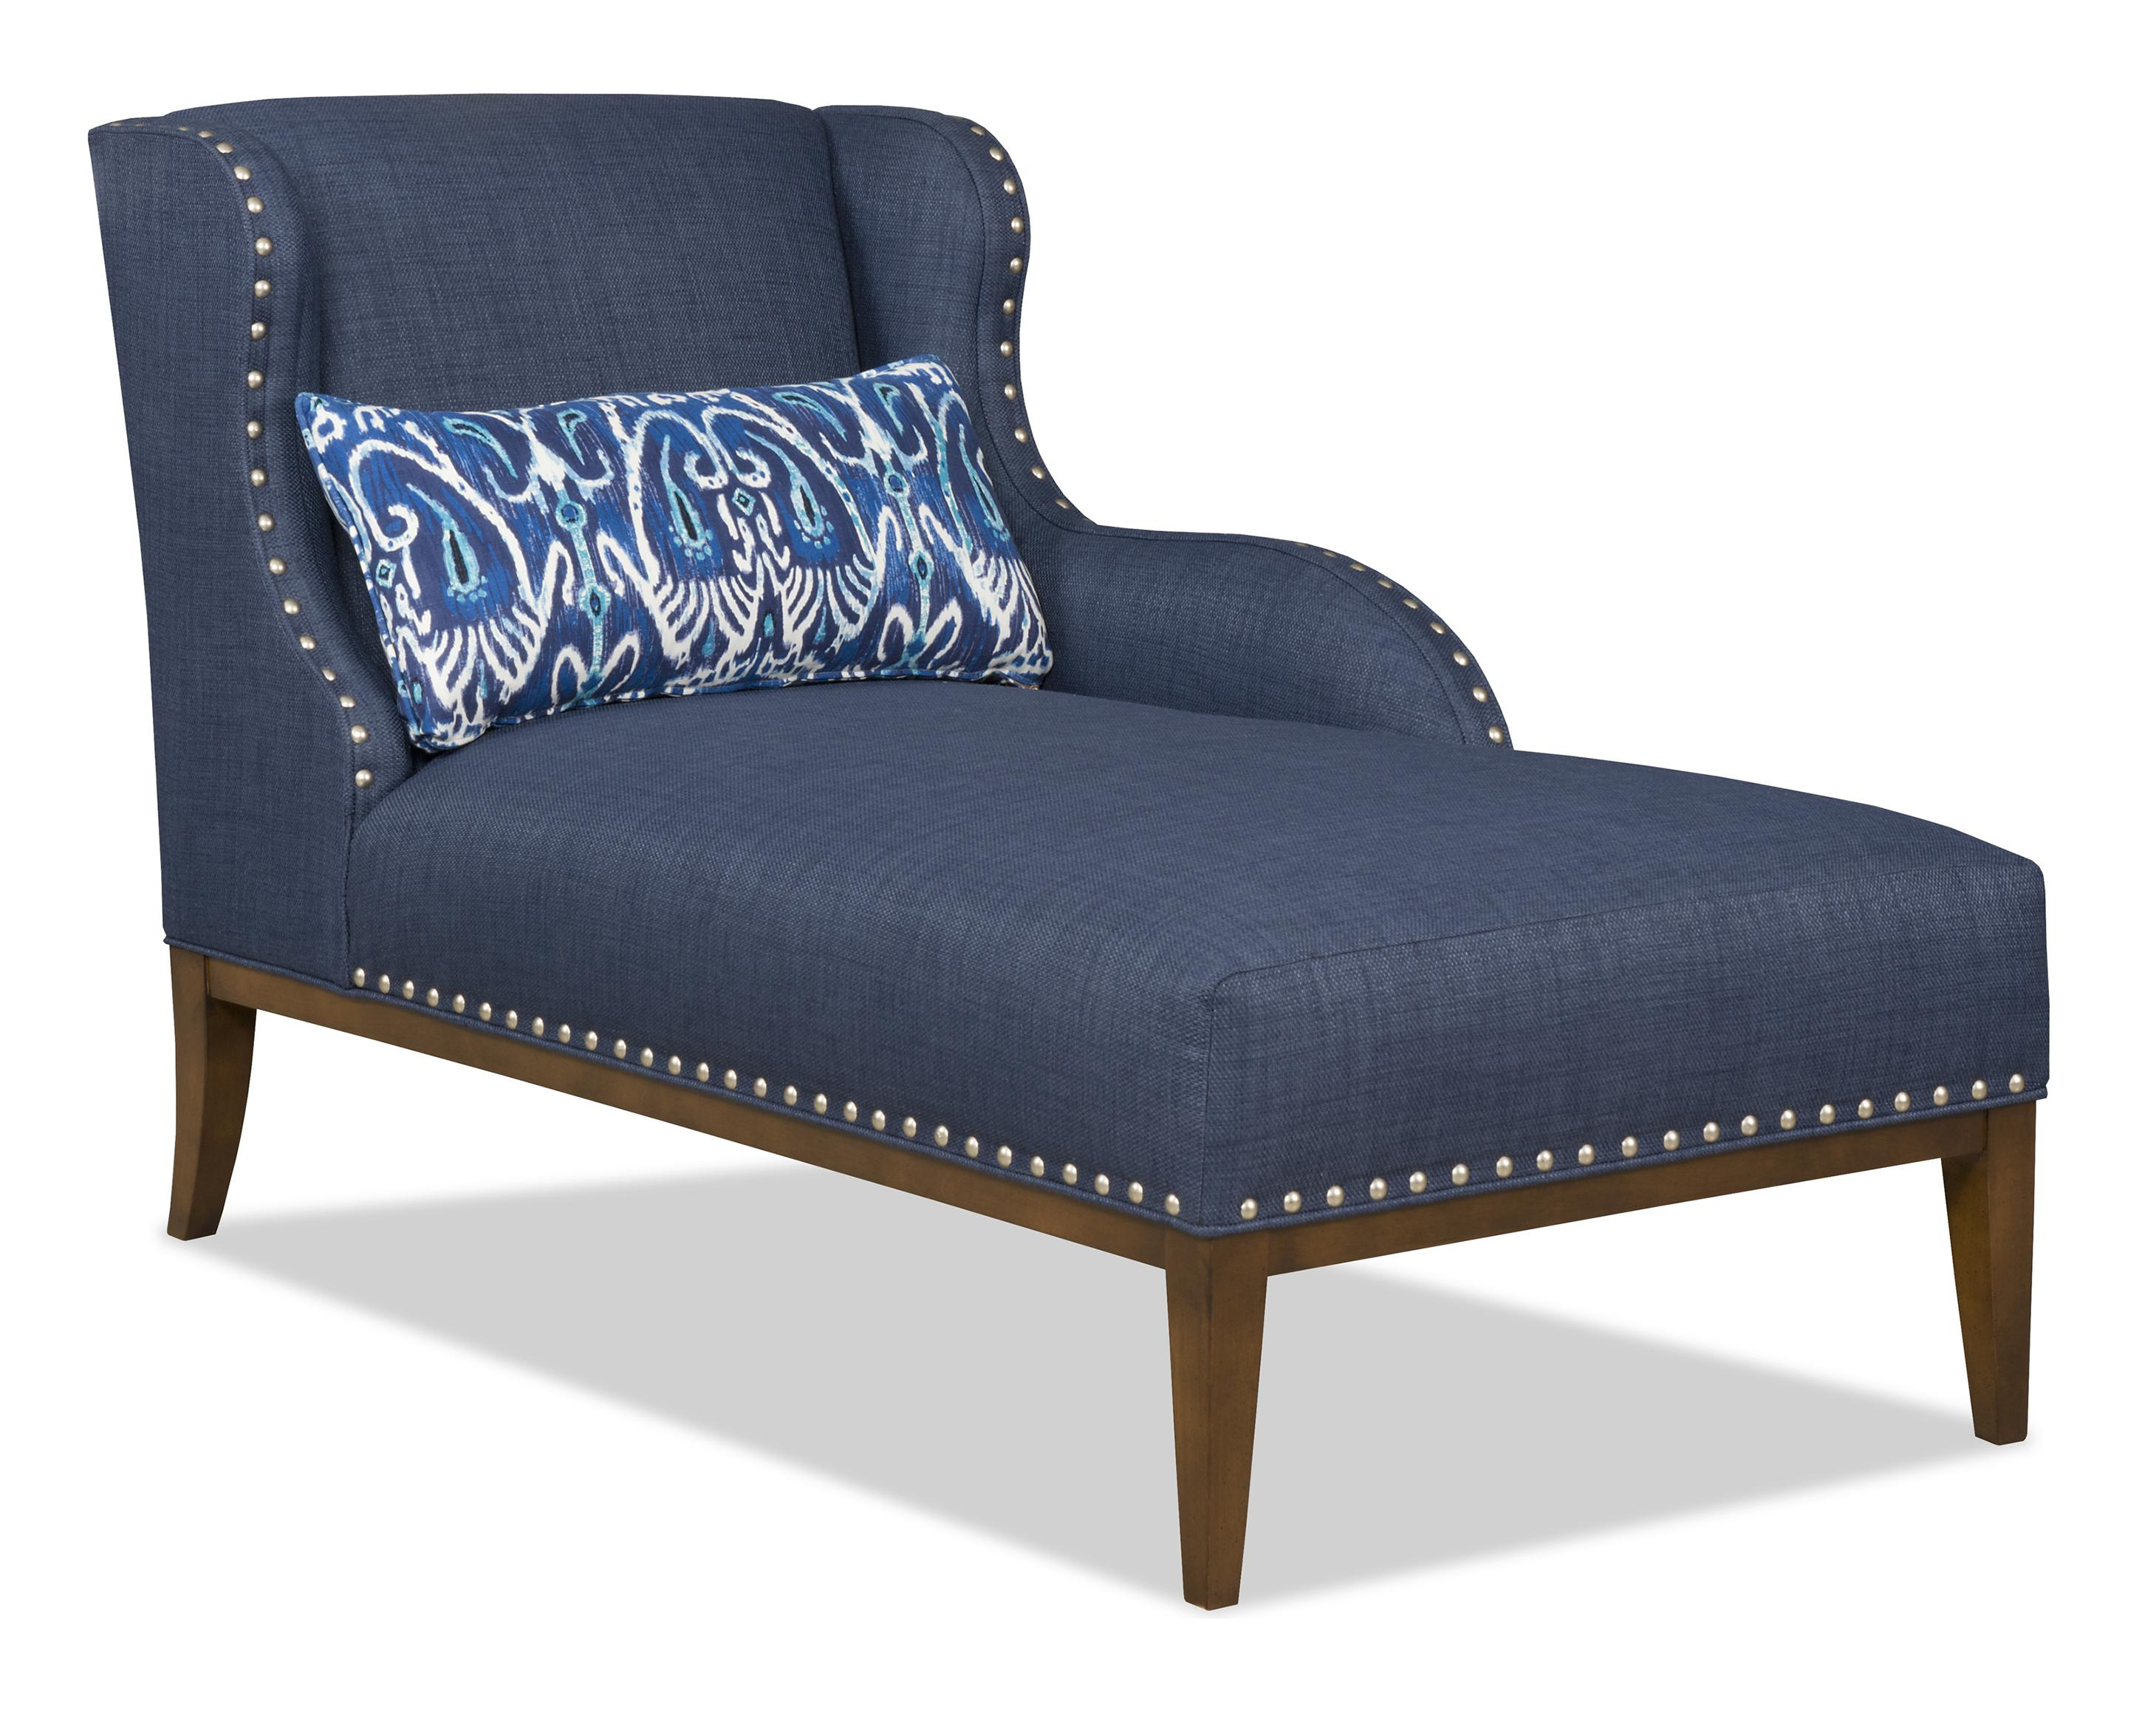 Sam moore cosette 6531 transitional raf one arm chaise for 2 arm pressback chaise